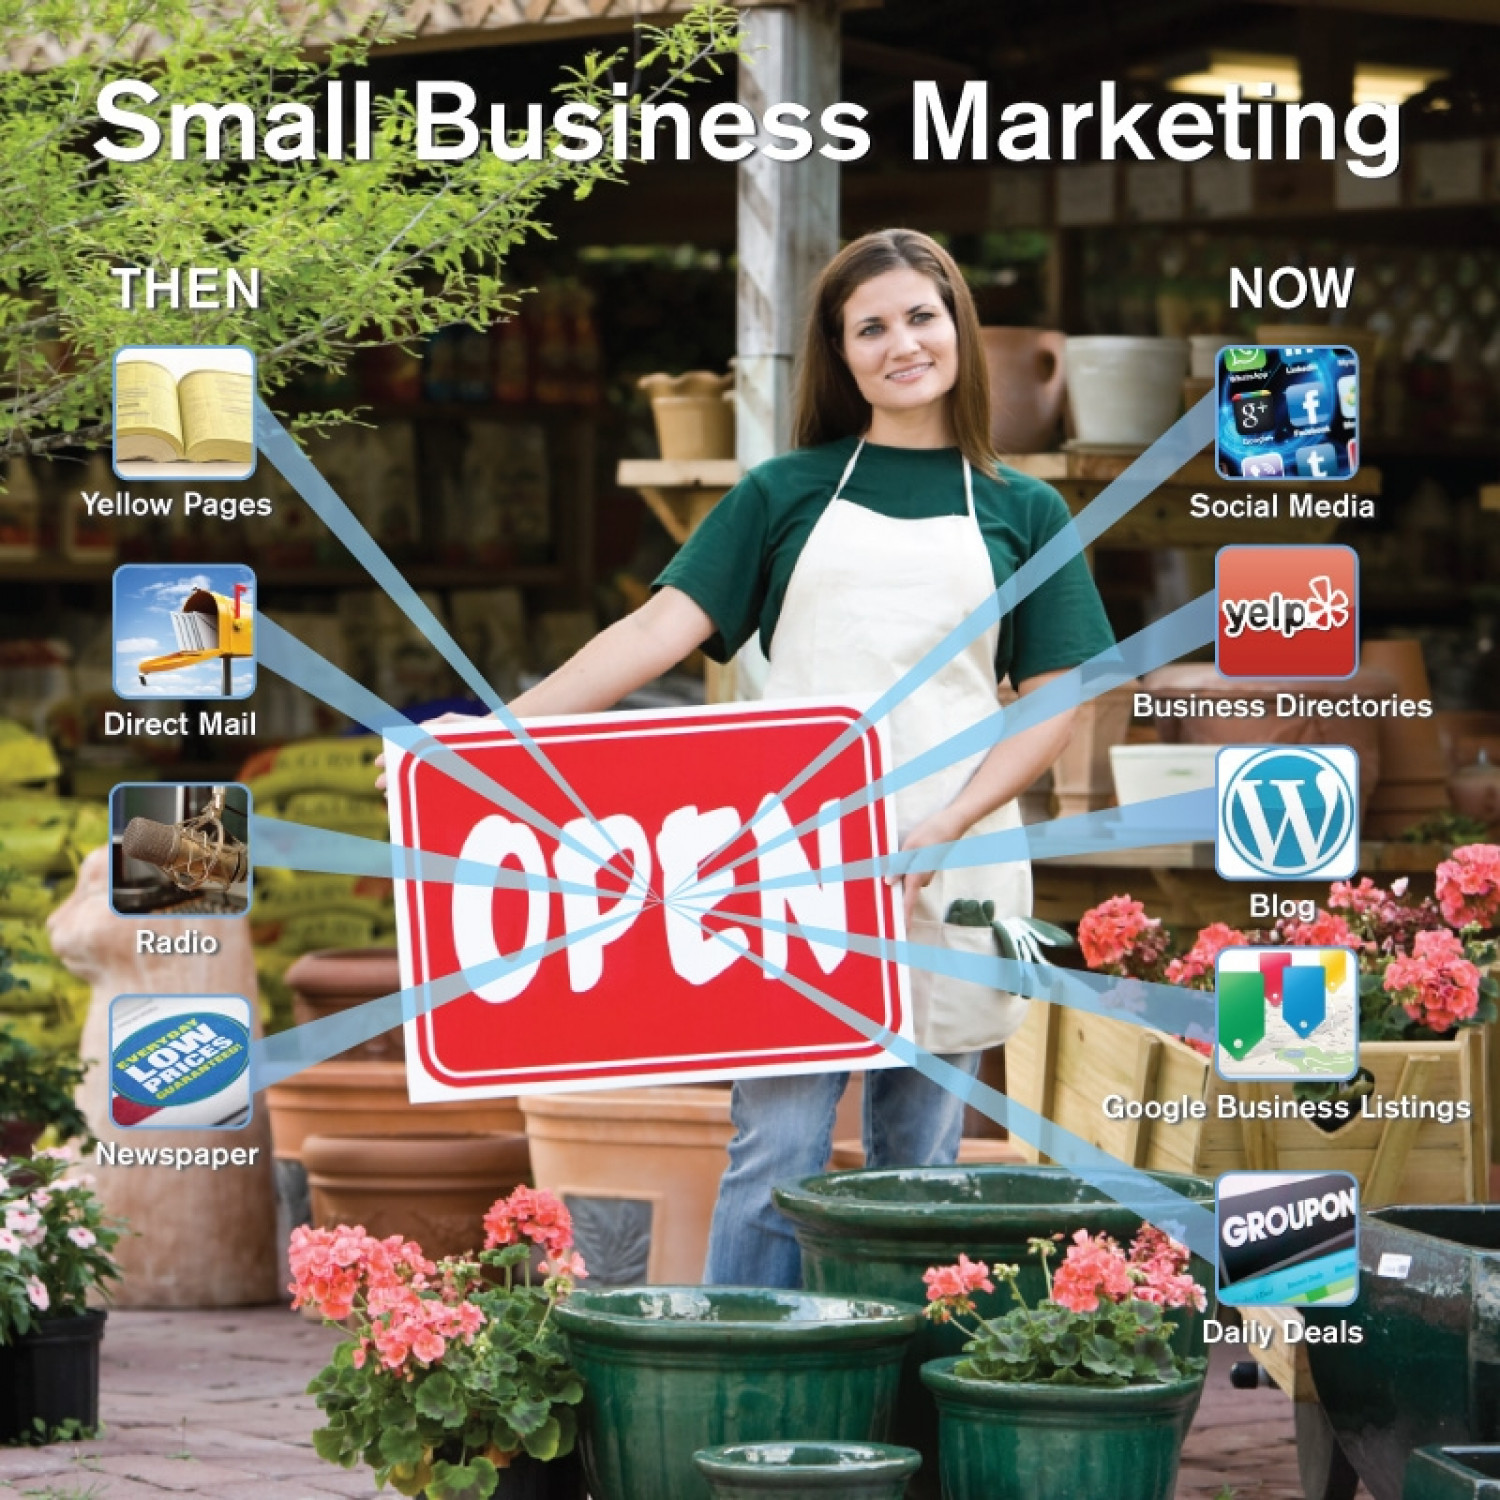 Saluting Small Business Infographic